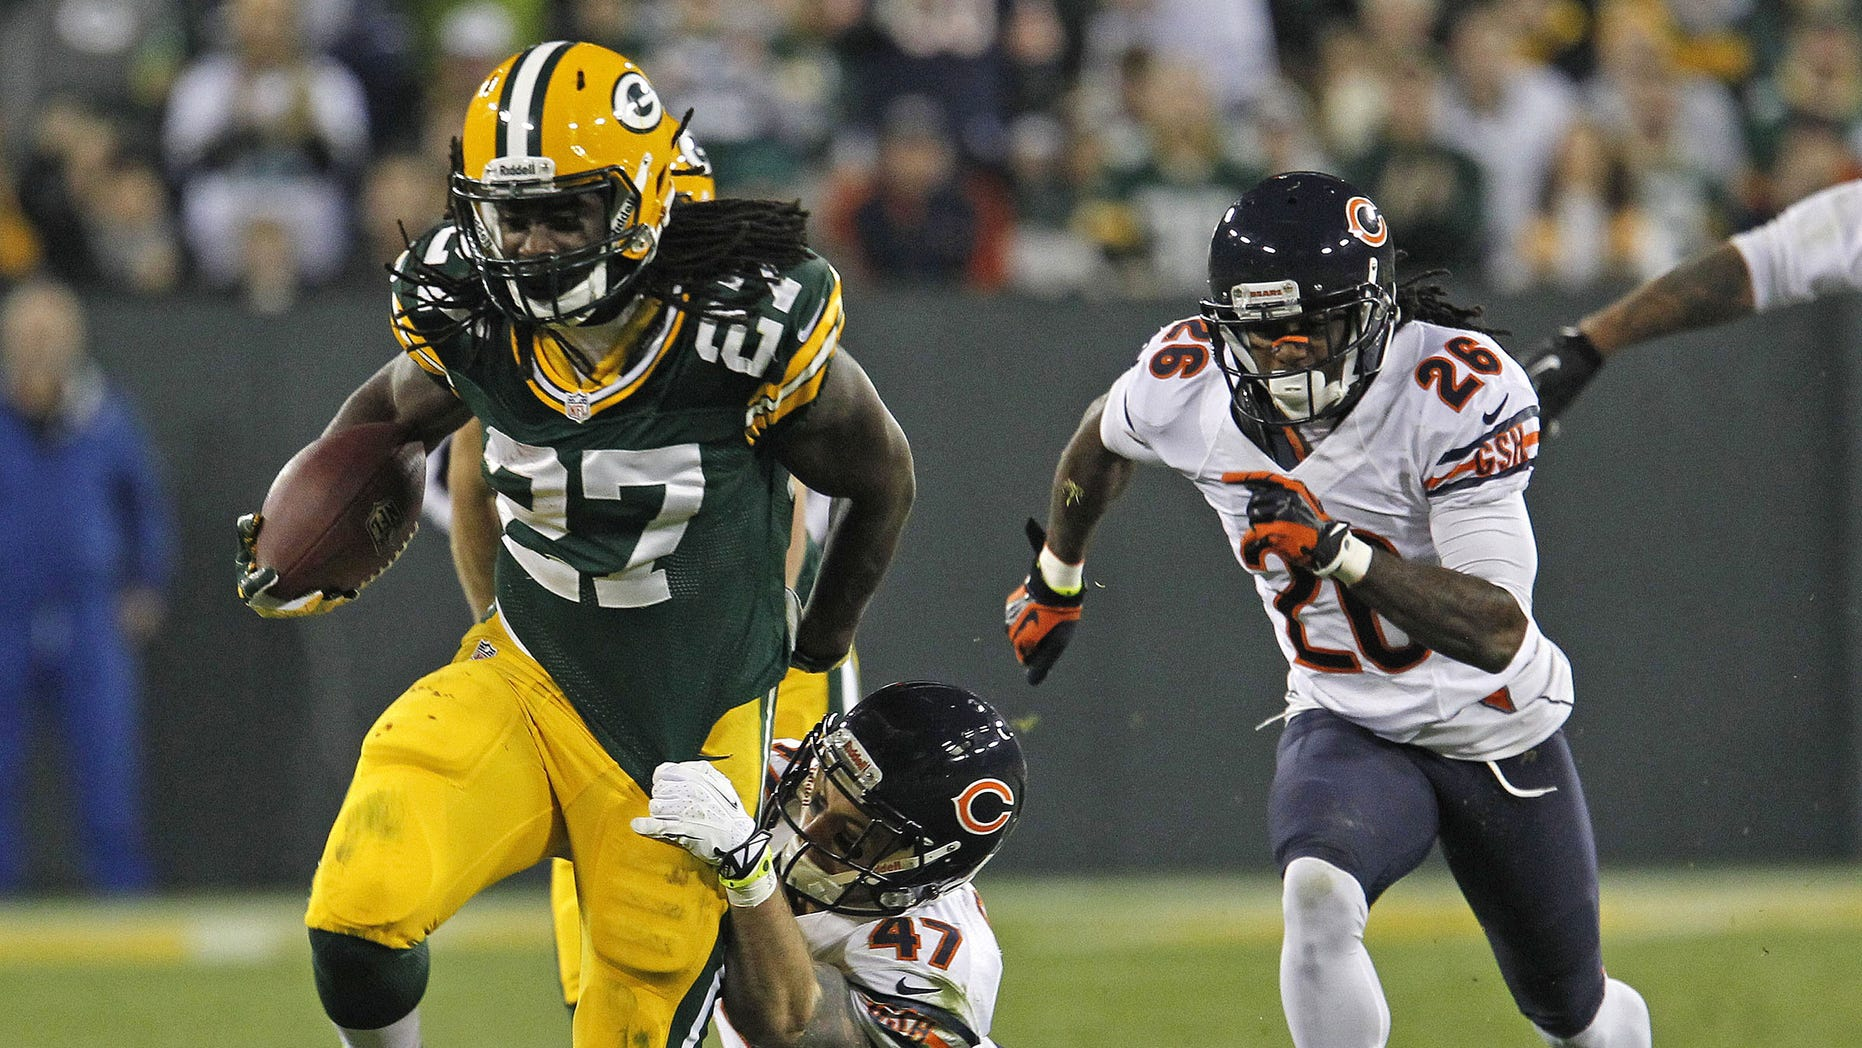 FILE - In this Nov. 4, 2013 file photo, Green Bay Packers running back Eddie Lacy is hit during a run by Chicago Bears free safety Chris Conte during an NFL football game in Green Bay, Wis. The Eagles are counting on seeing a whole lot of Lacy when they play at Green Bay on Sunday, Nov. 10, 2013. The Packers figure to give the ball to their rookie back even more now that Aaron Rodgers is out. (AP Photo/Matt Ludtke, File)